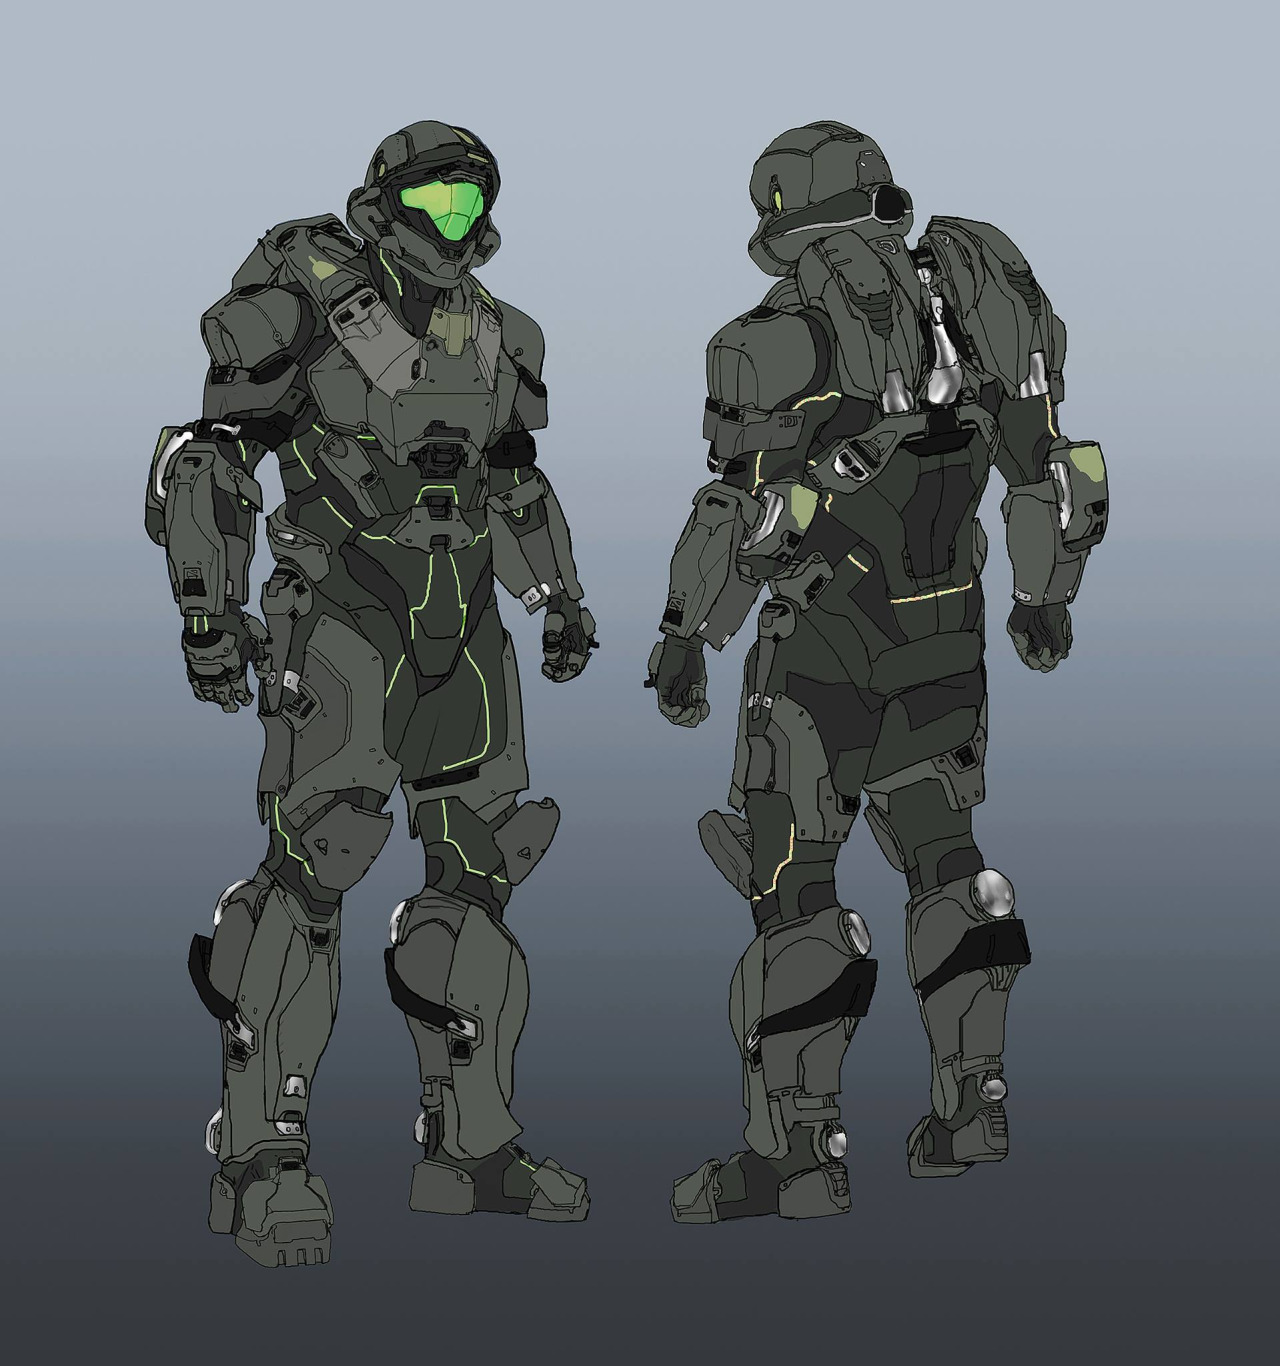 how to get odst armor in halo 5